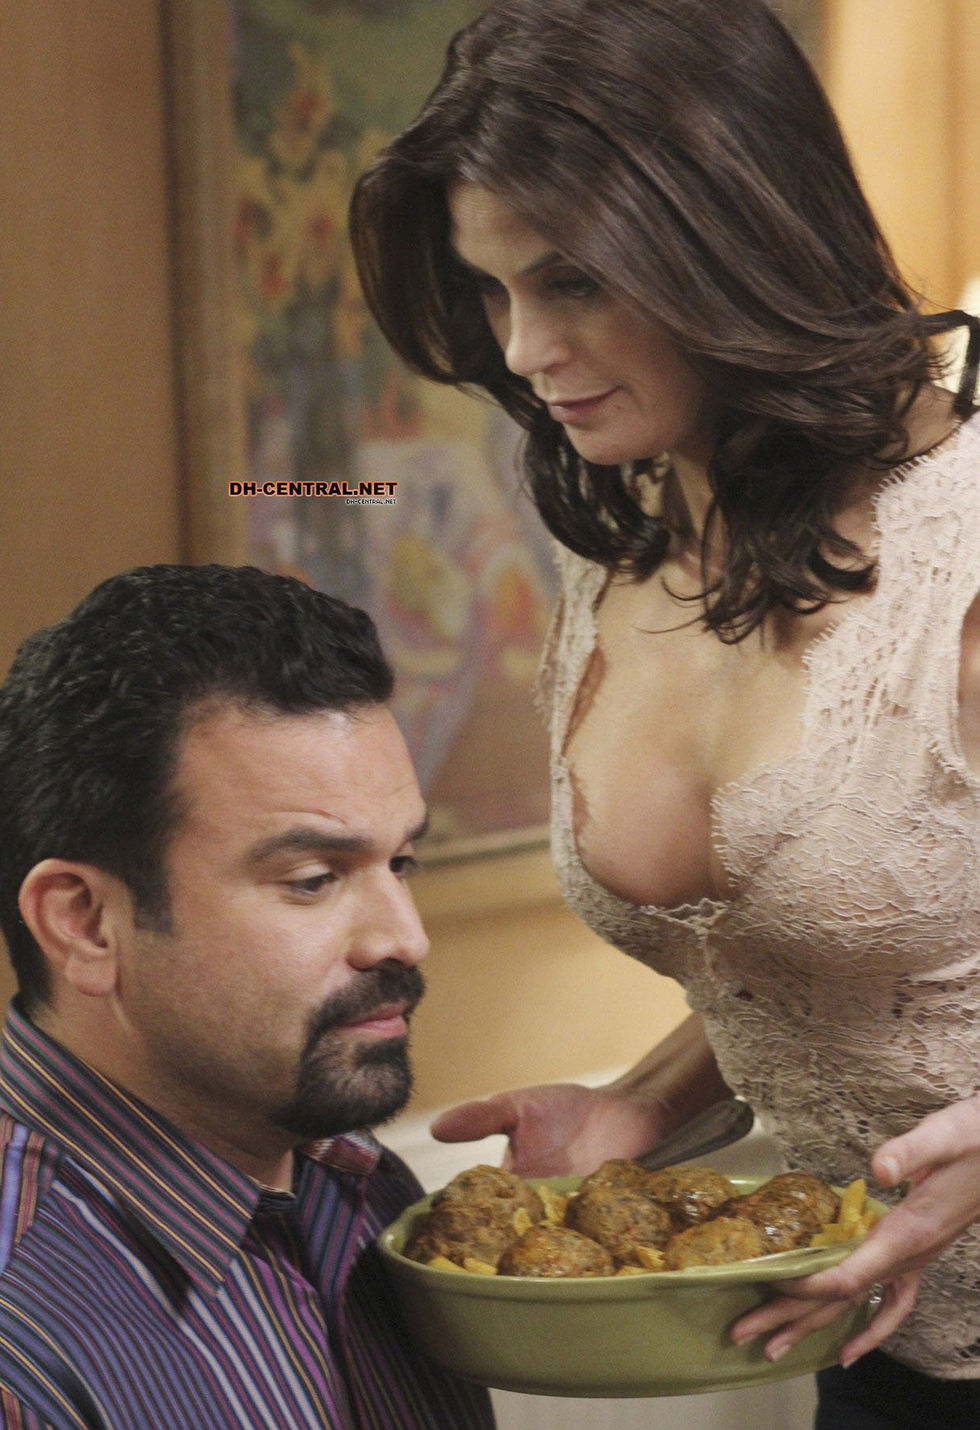 Teri Hatcher 2010 : teri-hatcher-cleavage-in-a-new-episode-of-desperate-housewives-03